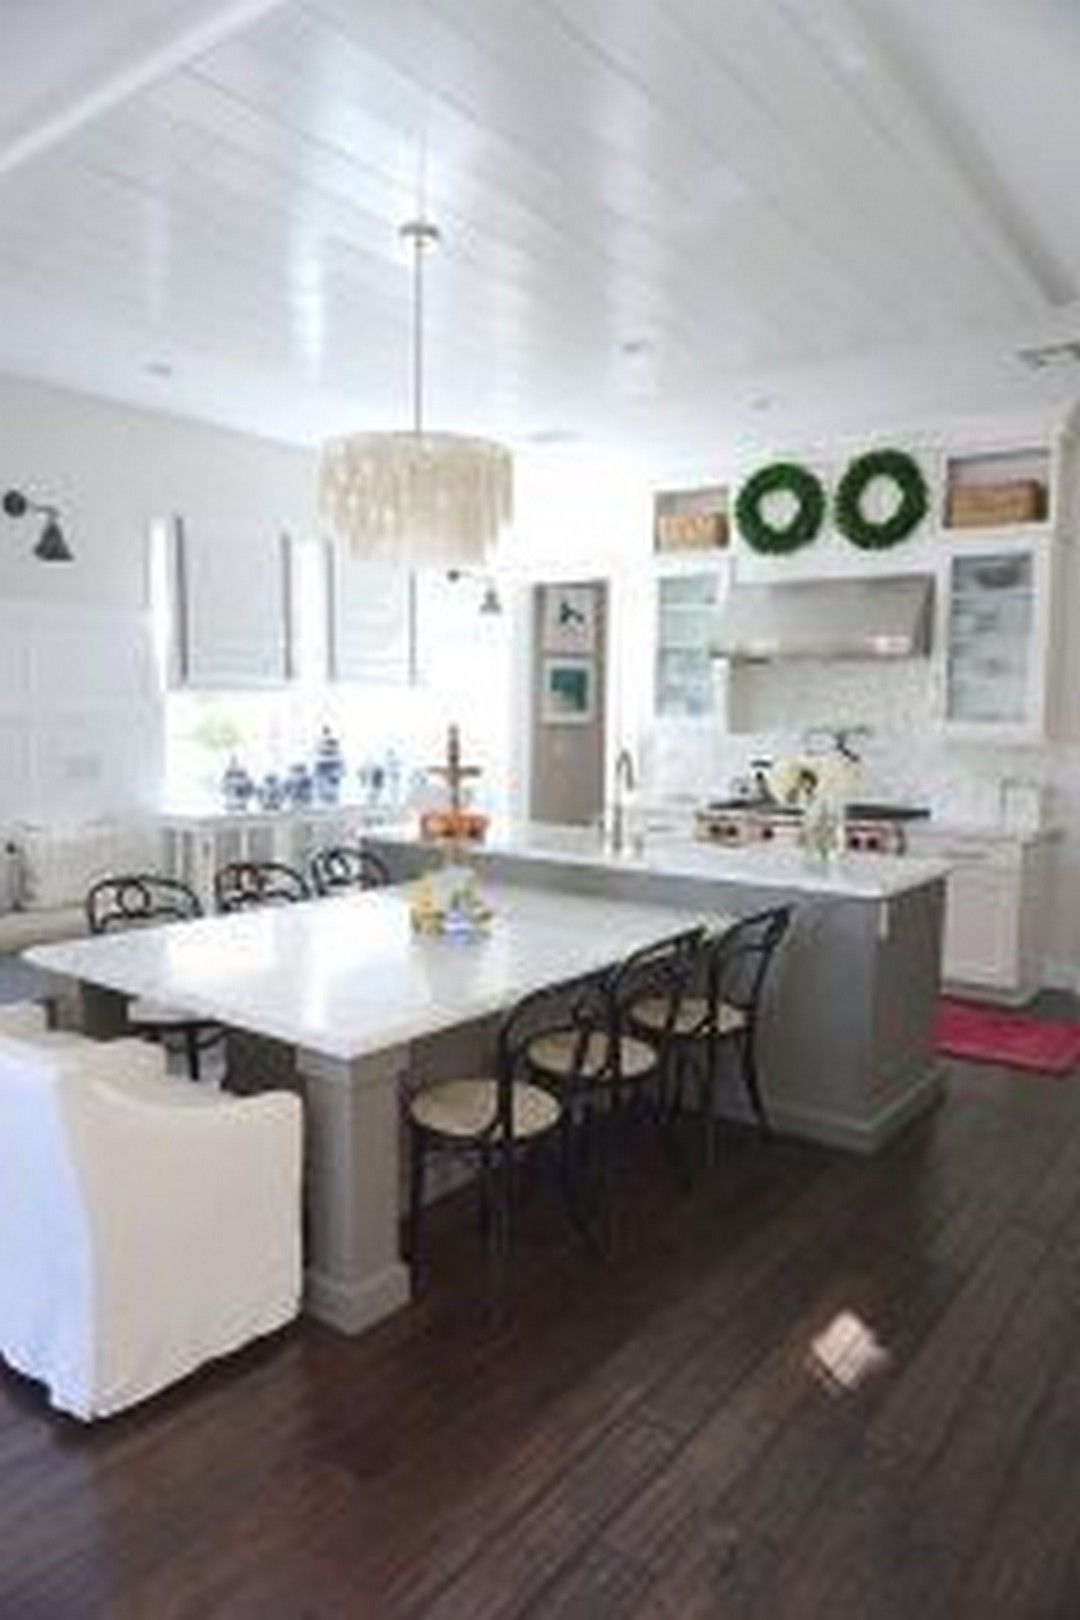 42 Great Ideas Kitchen Island With Built In Seating Inspiration Kitchen Island With Bench Seating Moveable Kitchen Island Kitchen Layout